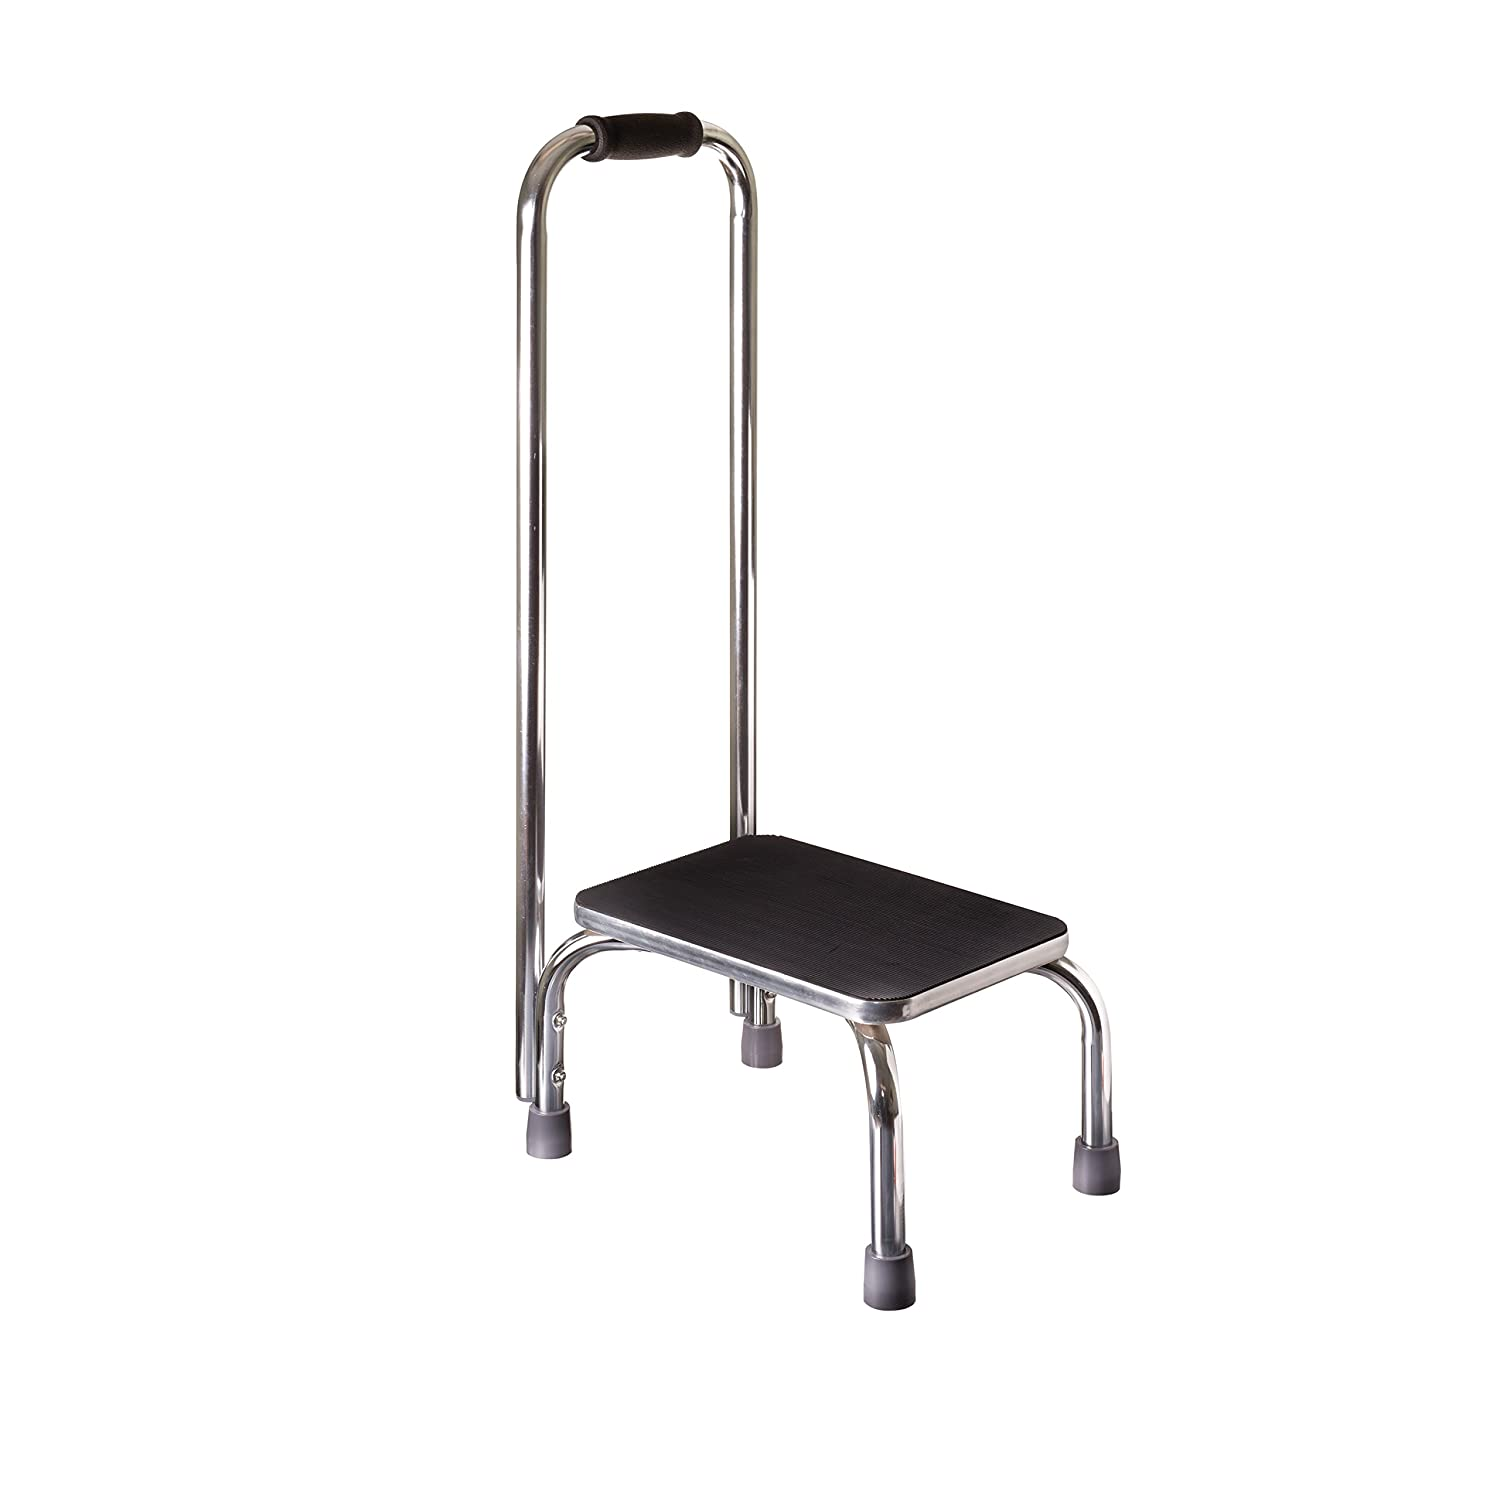 gls capacity load p ladders stools type duty rating steel lb gorilla step with stool i